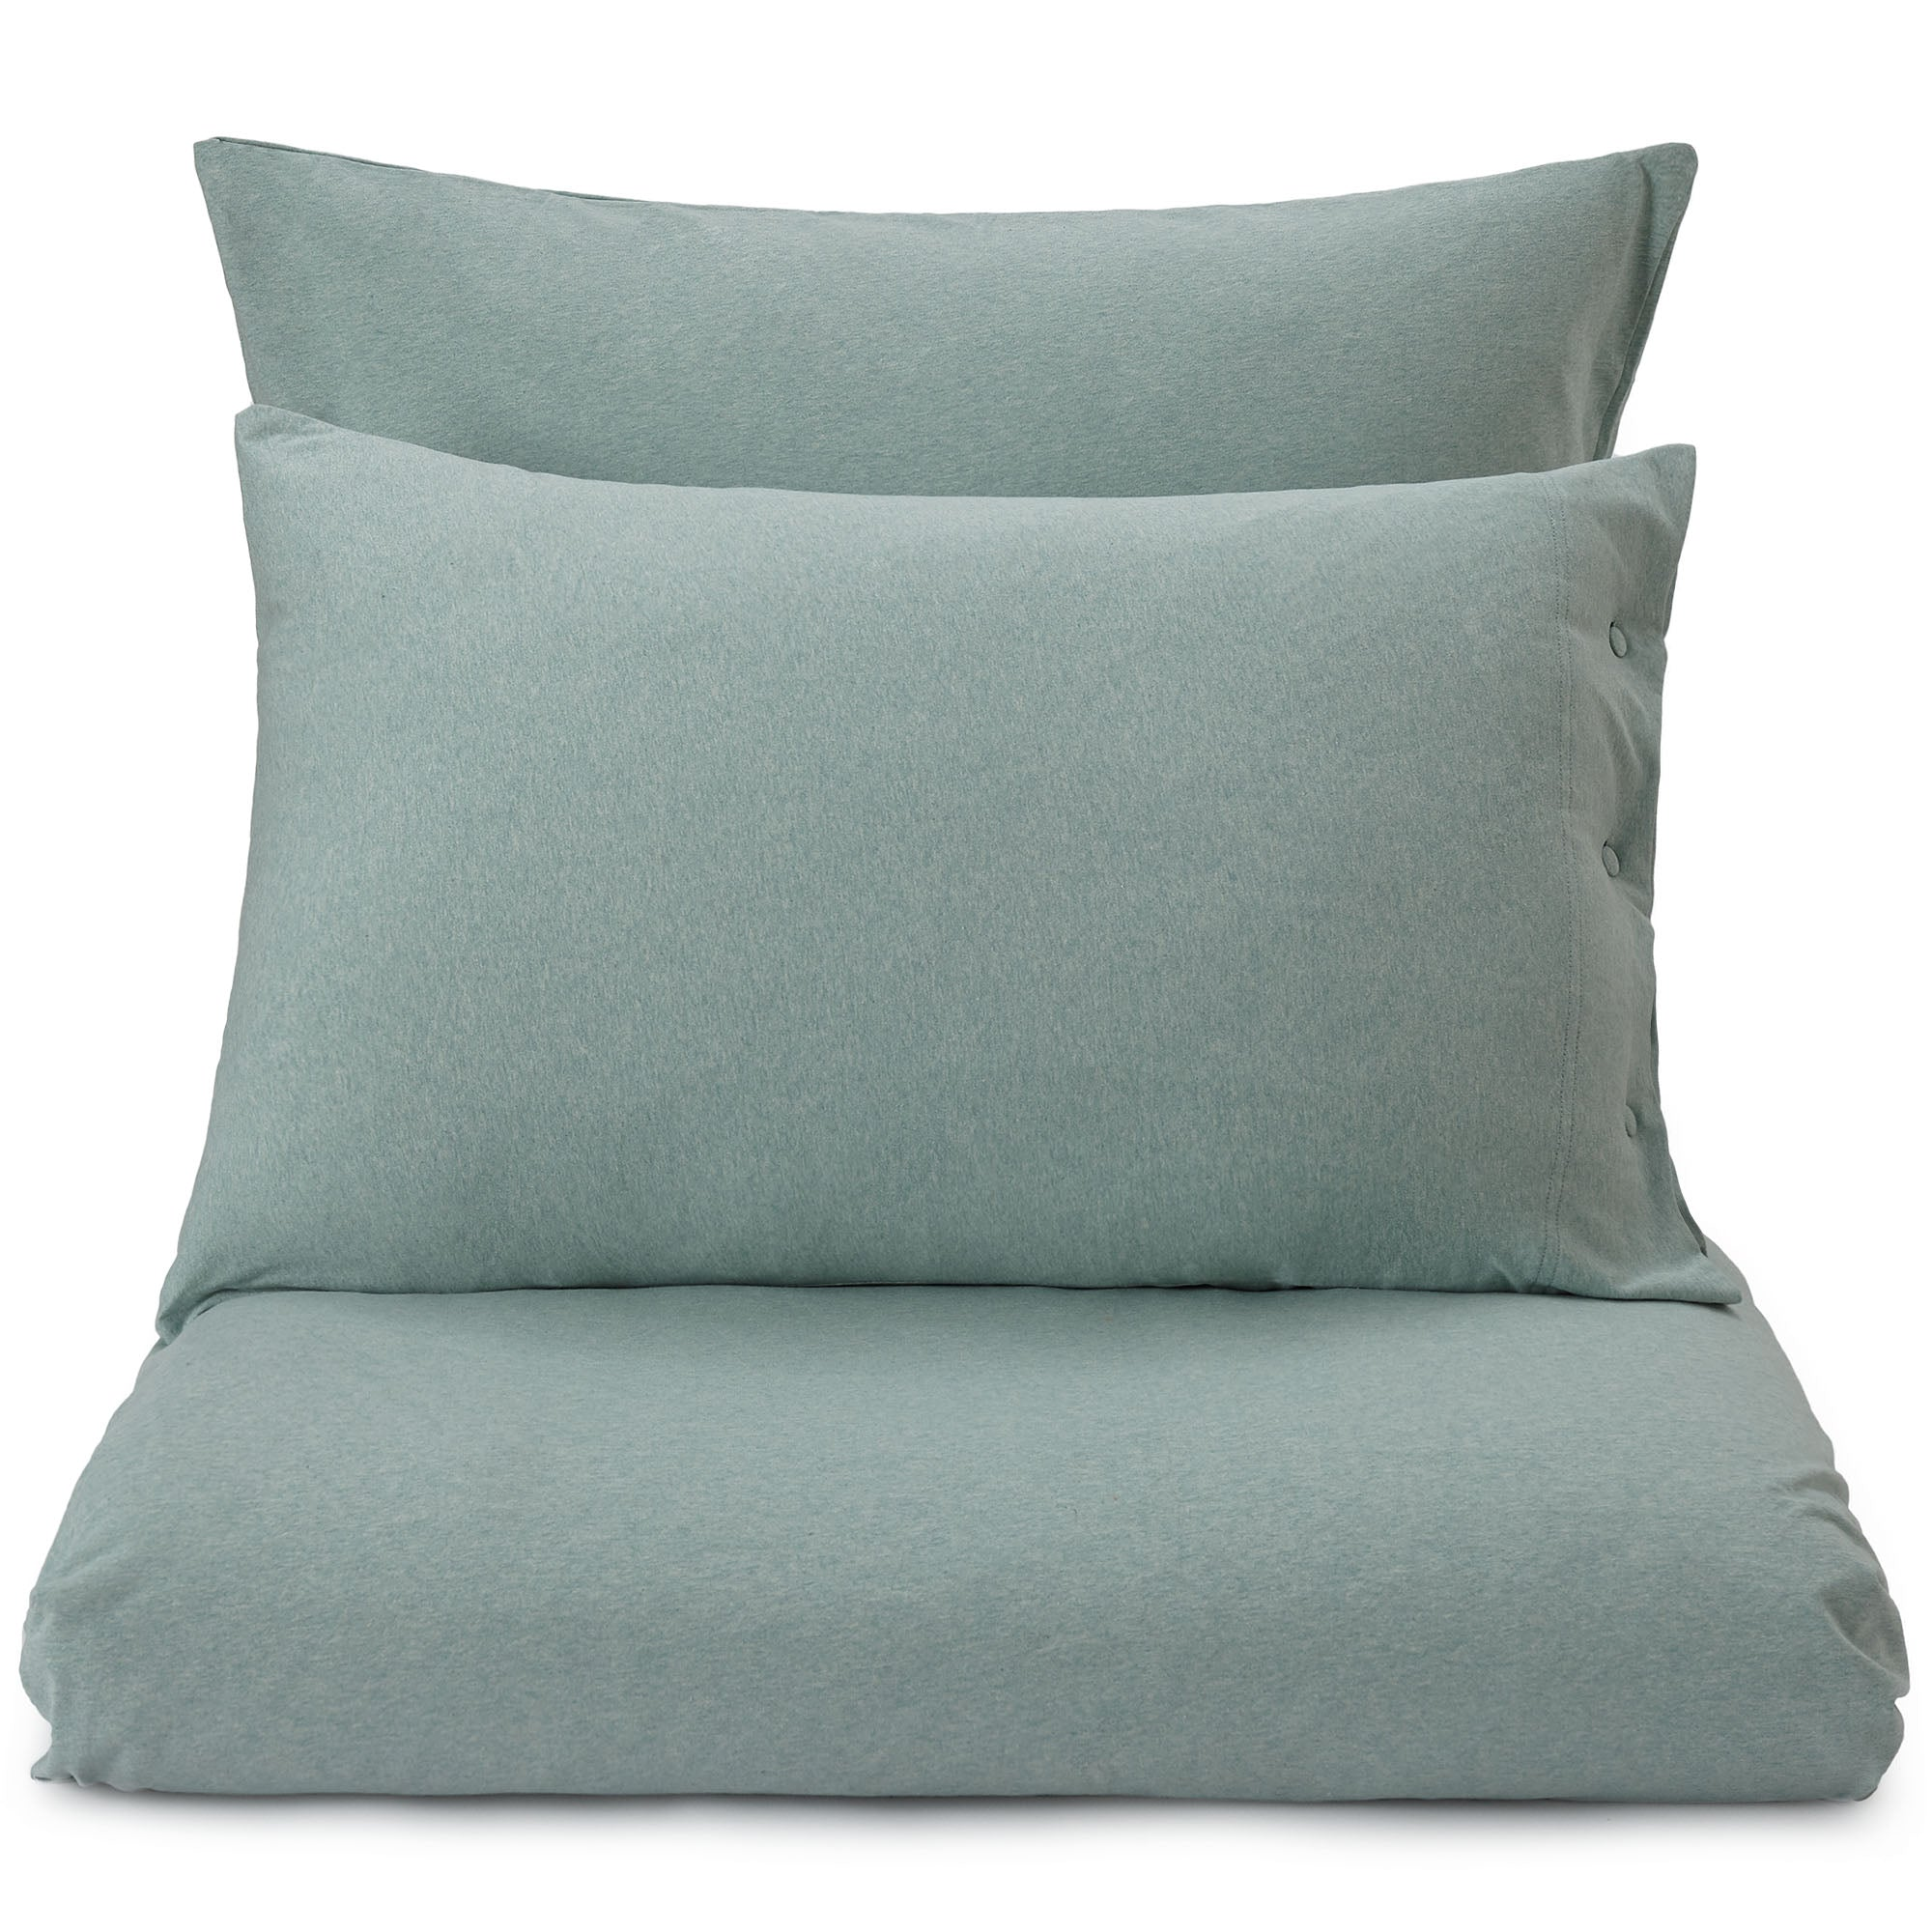 Sabugal pillowcase, light grey green melange, 100% cotton